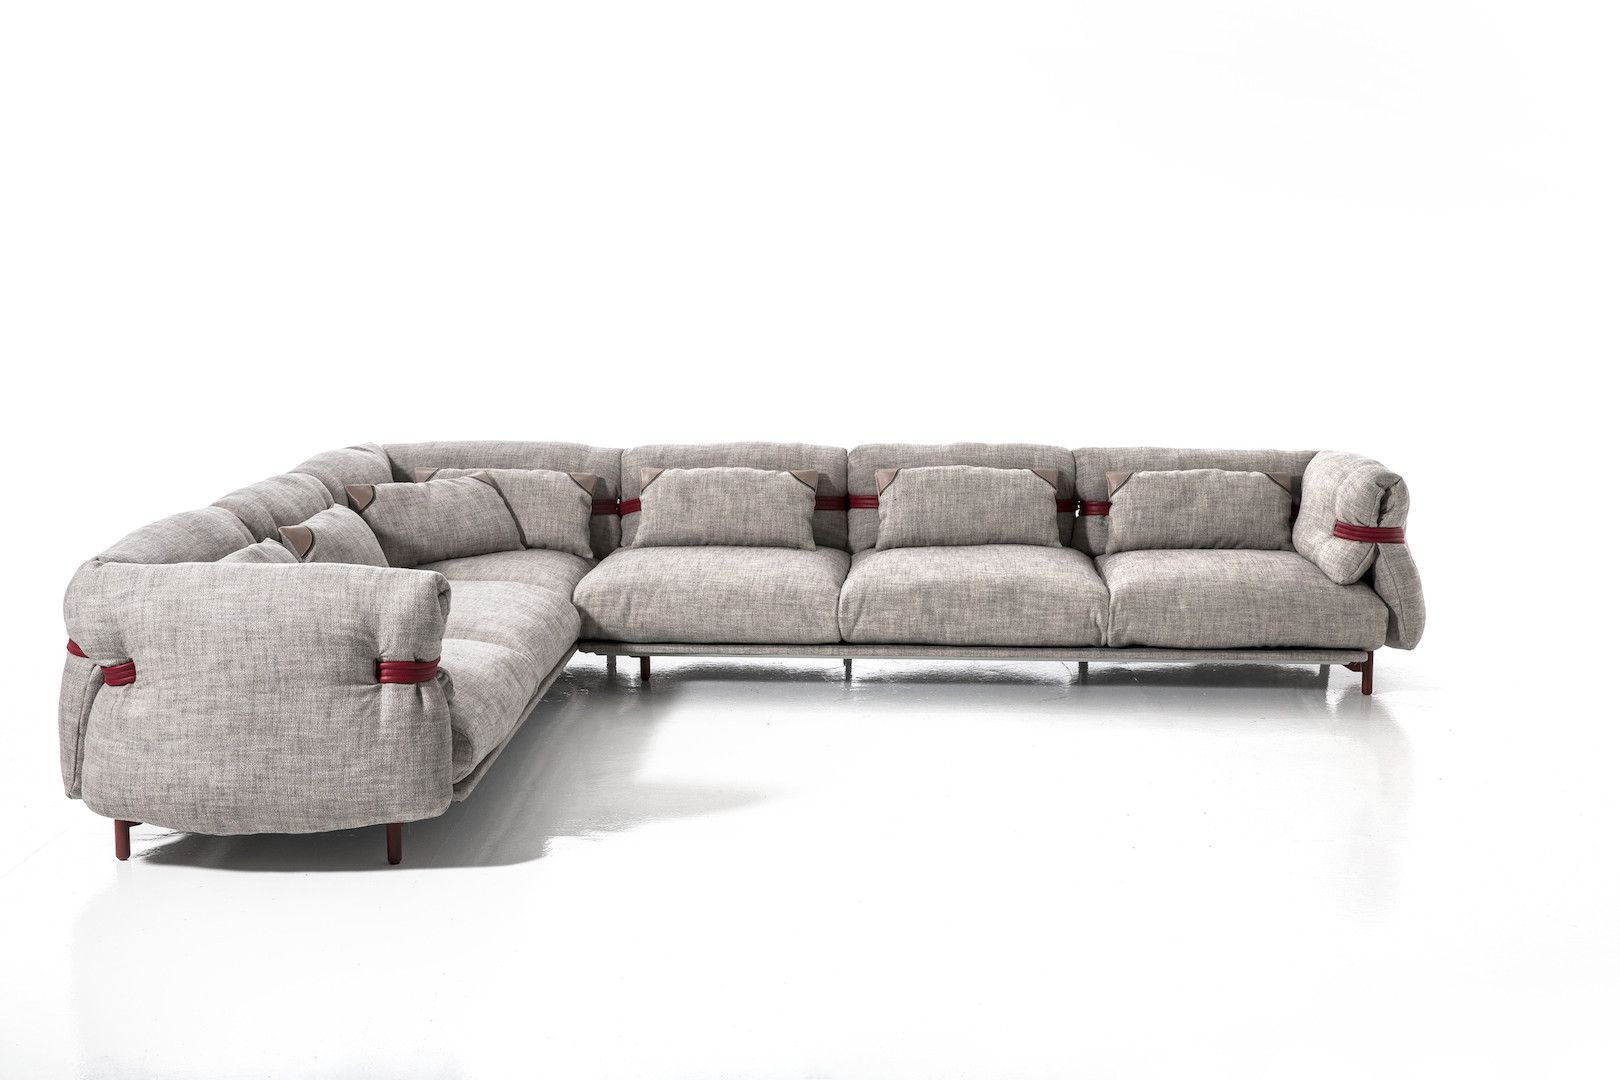 New Belt Sofa designed by Patricia Urquiola 2.jpg